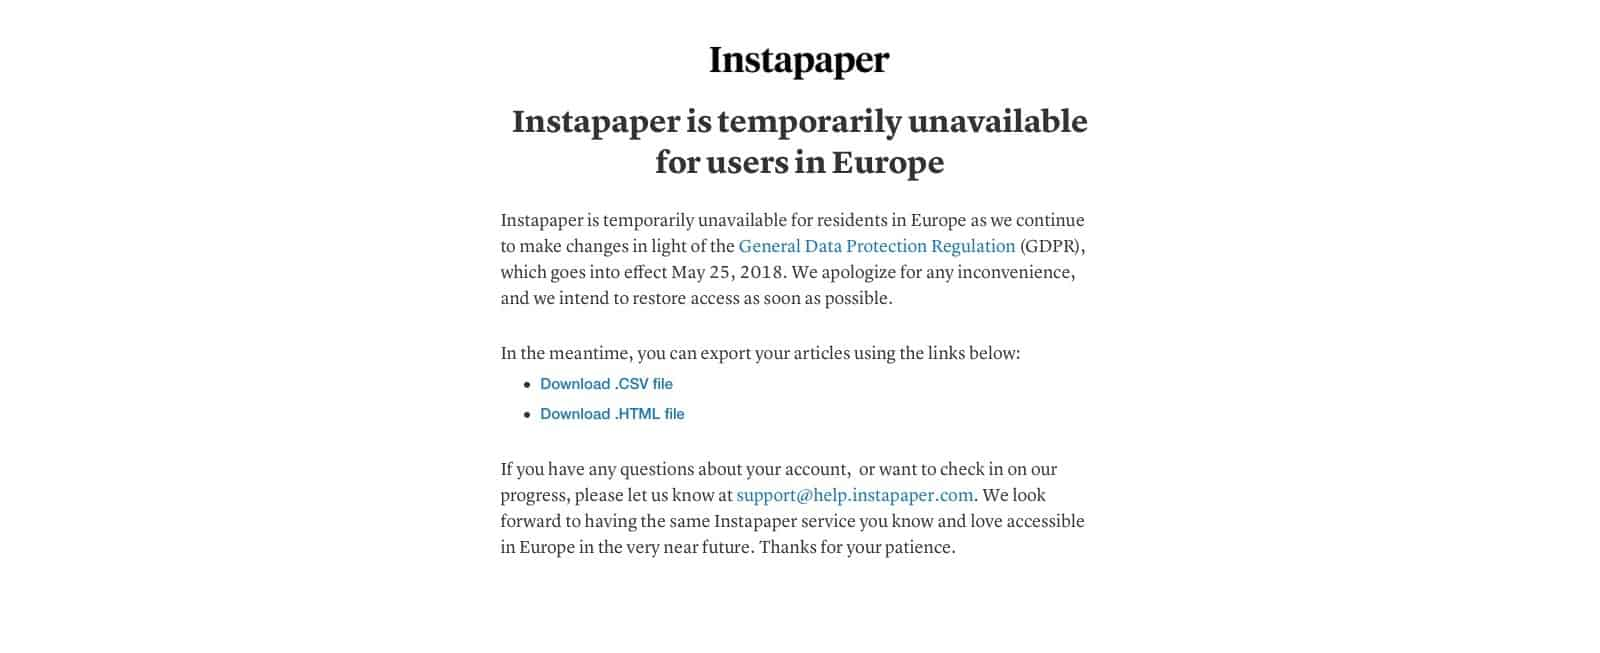 Instapaper is unavailable to EU users.